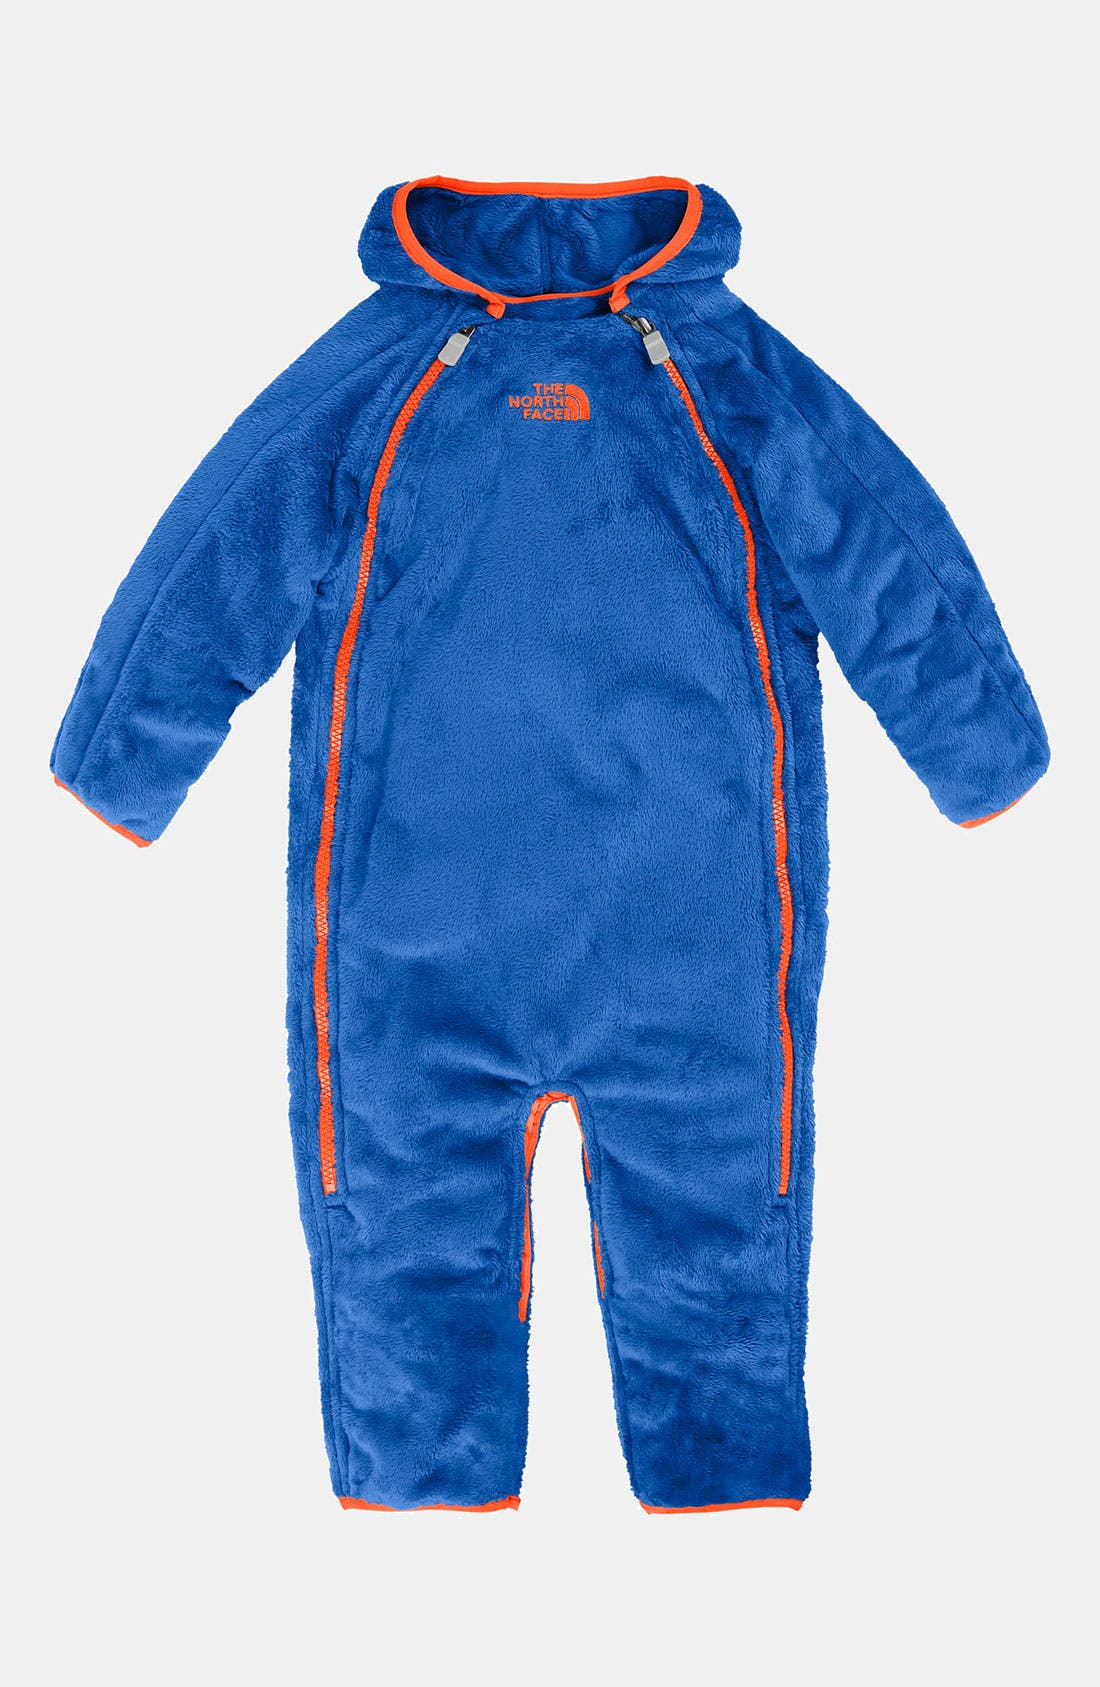 Main Image - The North Face 'Buttery' Bunting (Baby)